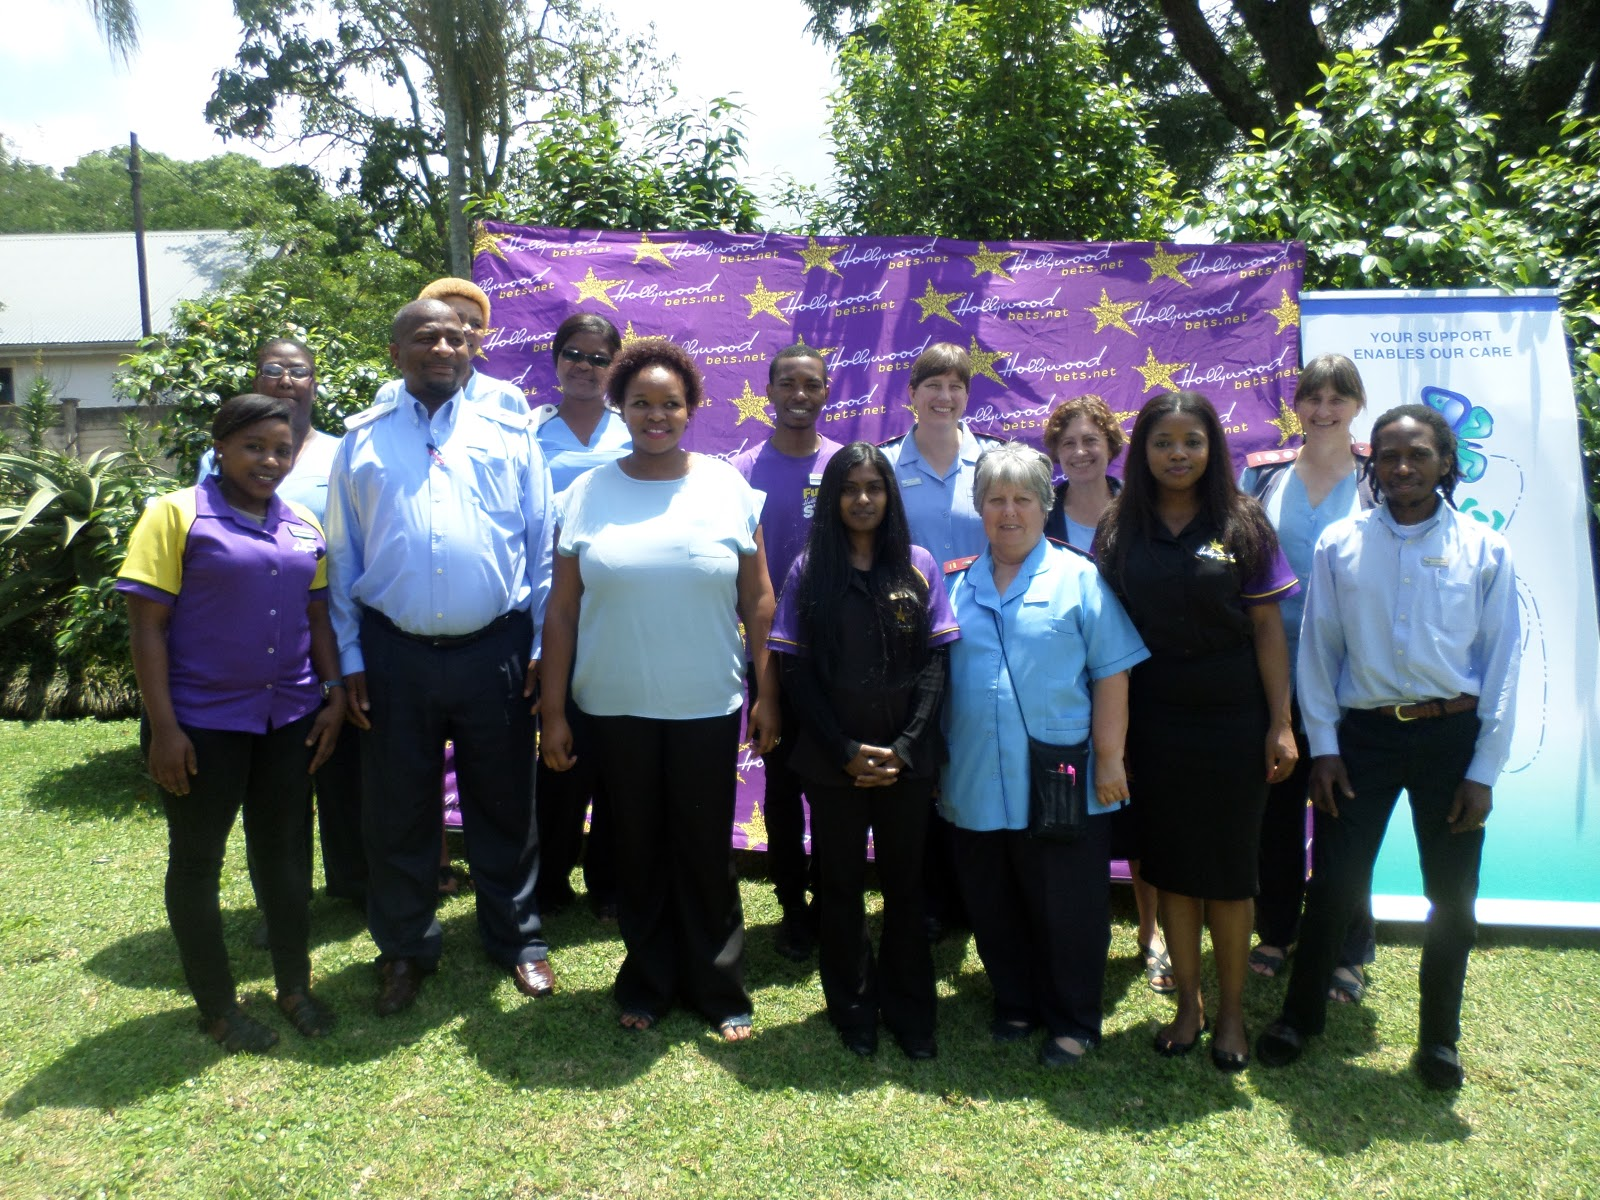 Hollywoodbets Dukwahs chose Msunduzi Hospice as their organisation of choice for Hollywoodbets' Social Responsibility Programme for 2016/2017.